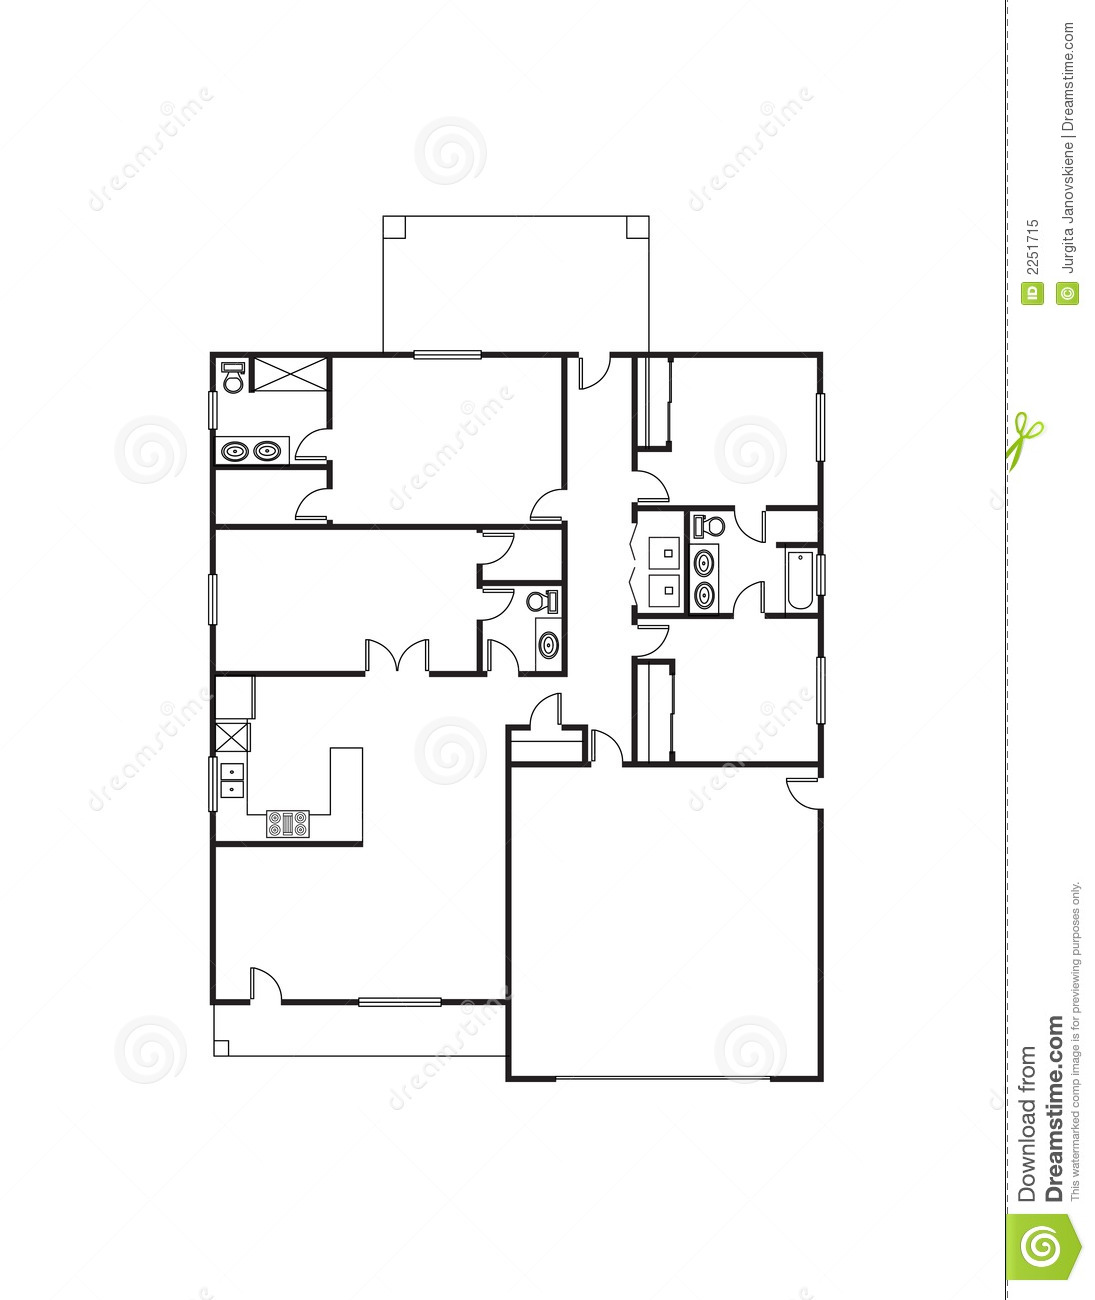 House plan royalty free stock photo image 2251715 Building layout plan free